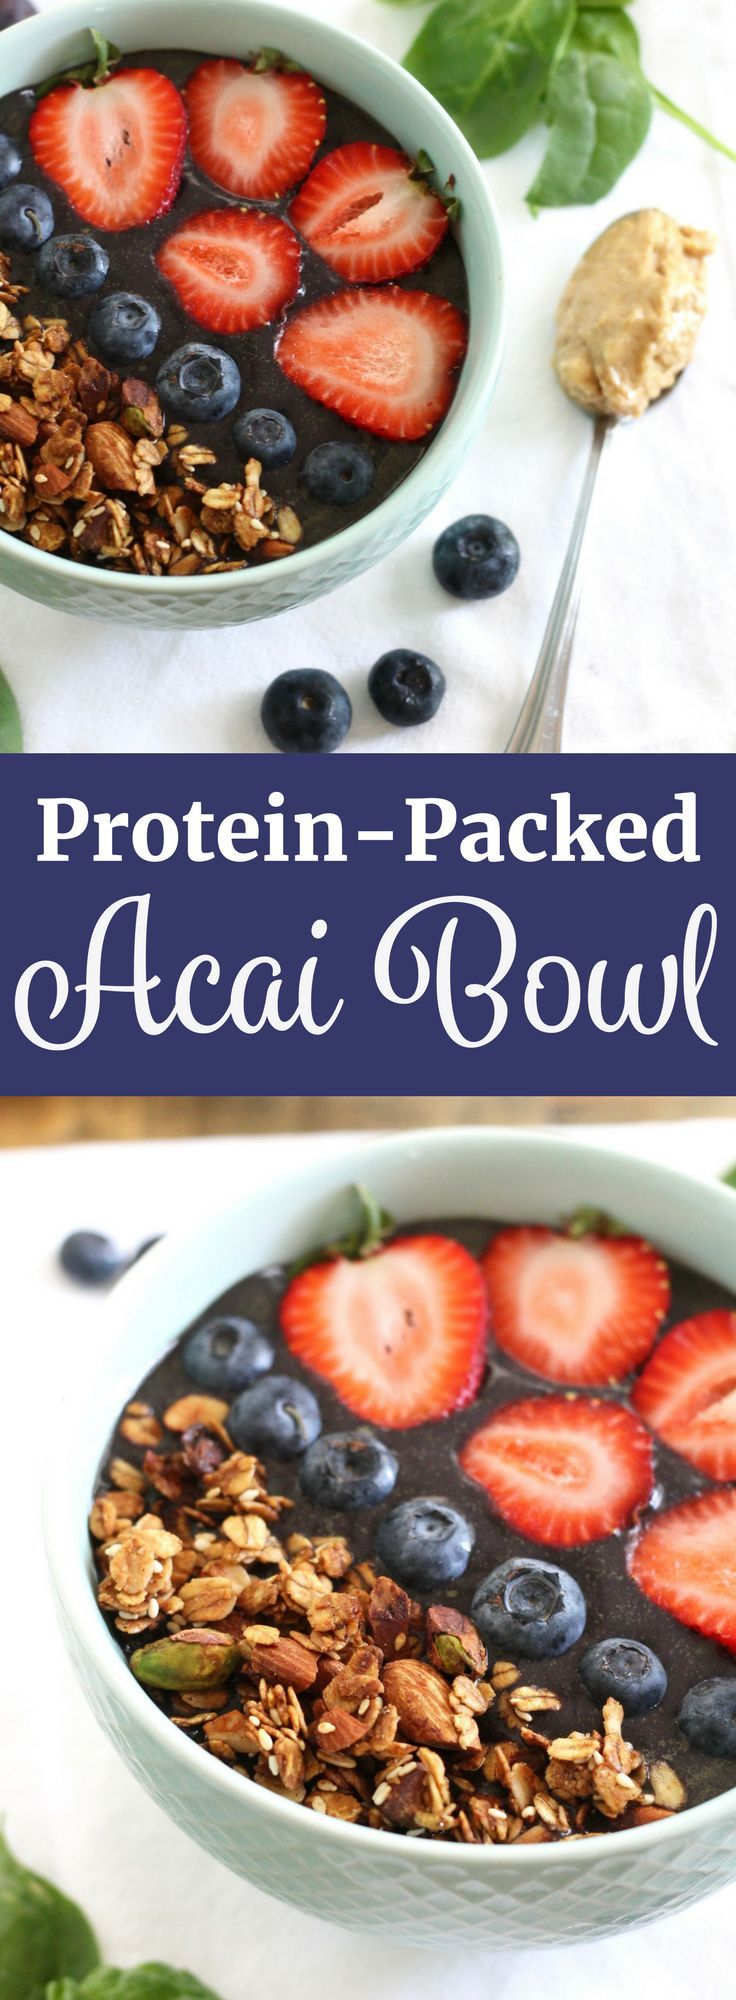 Protein Acai Bowl with Blueberries and Spinach! This recipe is gluten-free, vegan, and refined sugar-free! Plus, you can make it in under 5 minutes! // www.littlechefbigappetite.com // Protein Smoothie, Smoothie Bowl, Healthy Acai Recipe, Acai with Granola, Vegan Acai Recipe